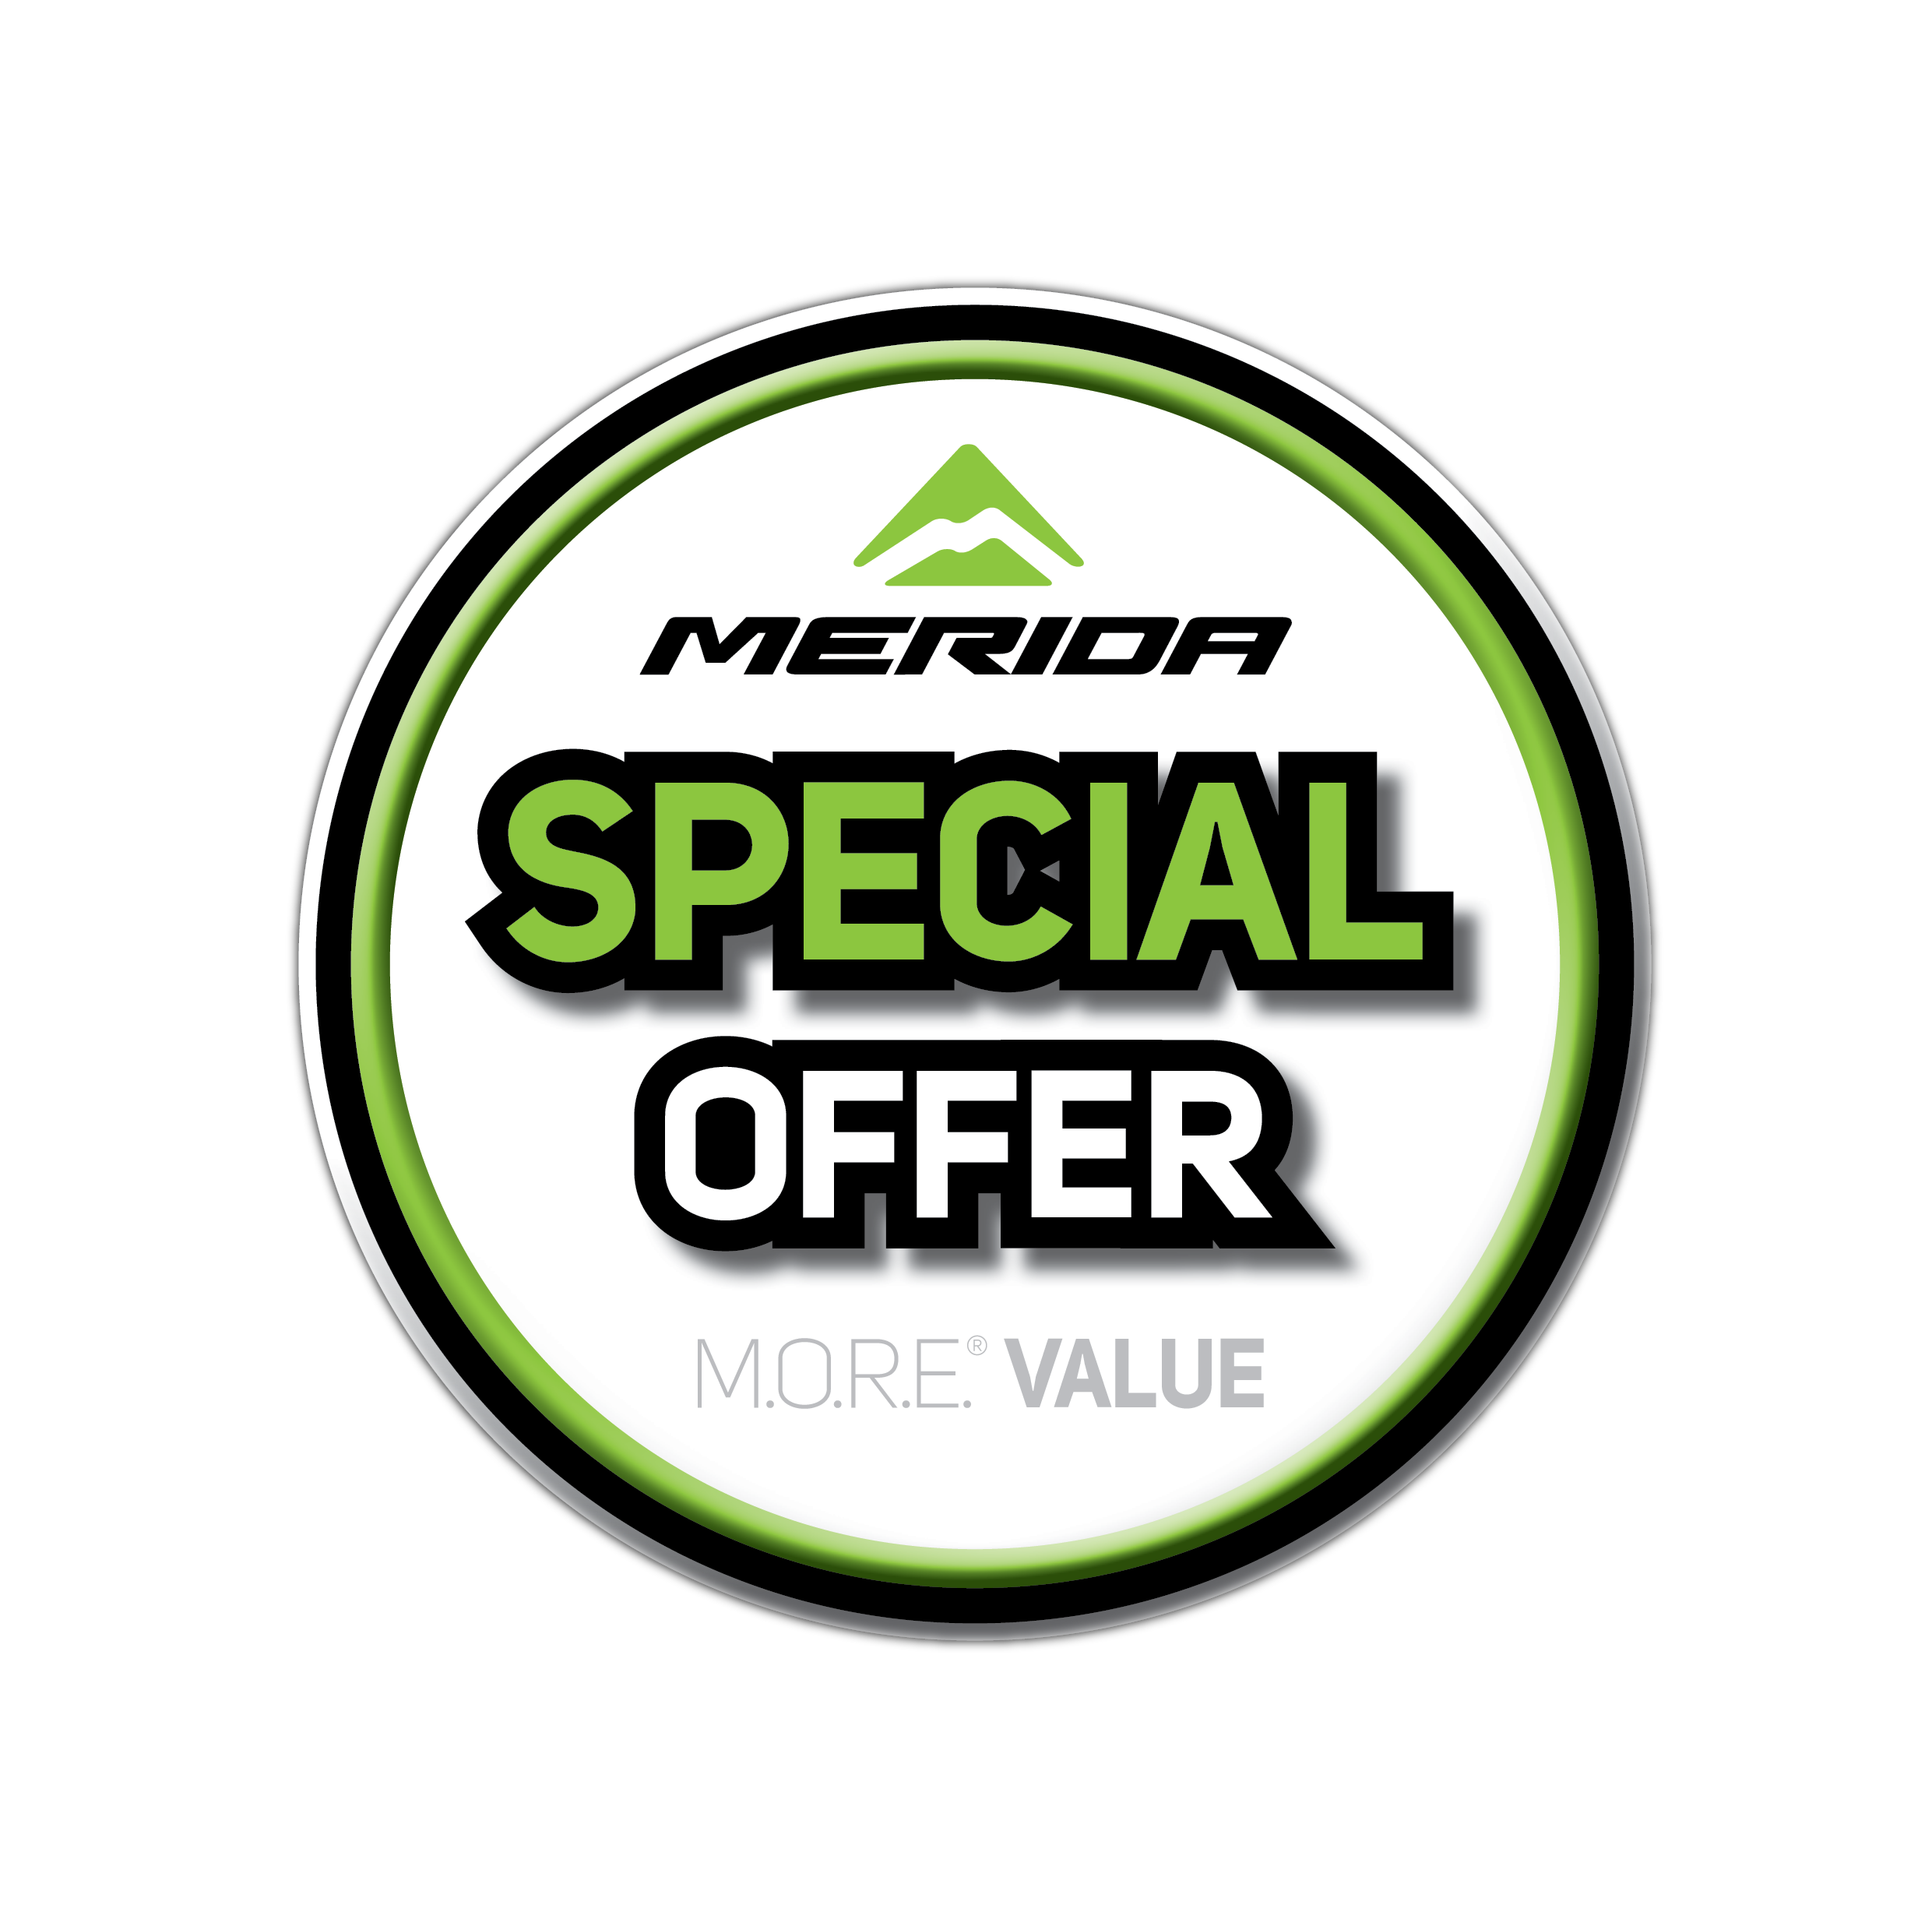 LOGO SPECIAL OFFER MERIDA